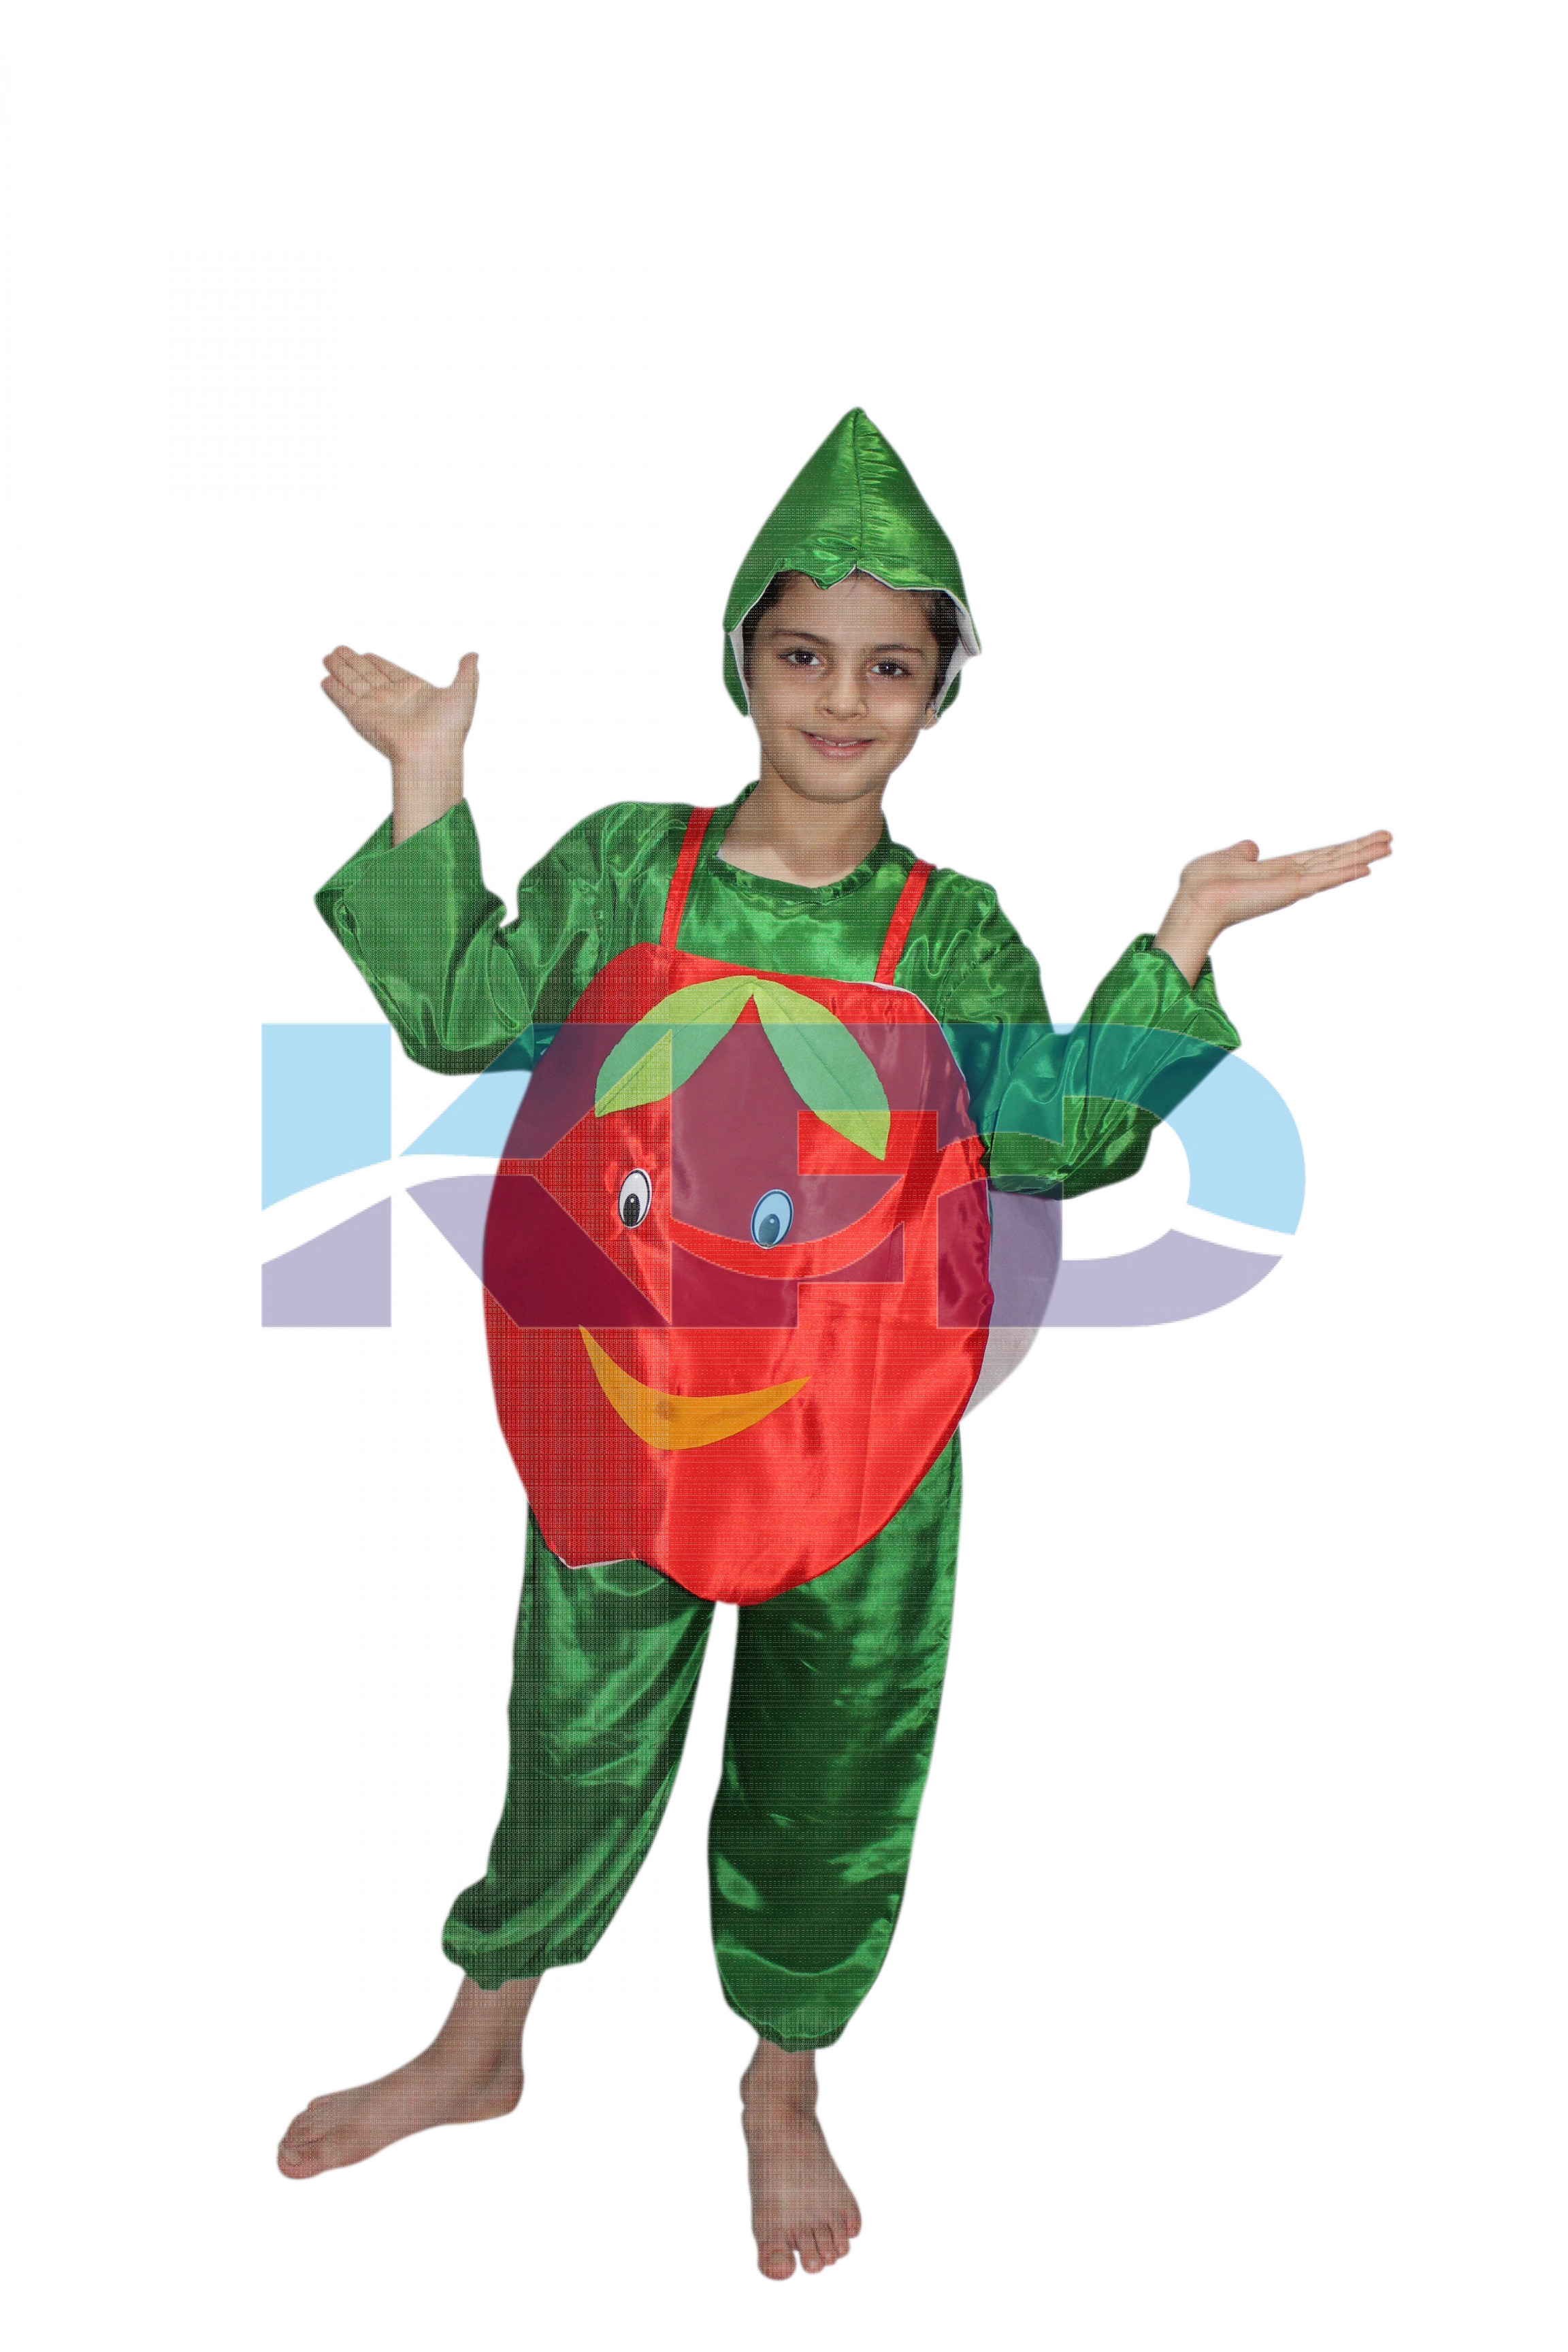 Apple fancy dress for kids,Fruits Costume for School Annual function/Theme Party/Competition/Stage Shows Dress